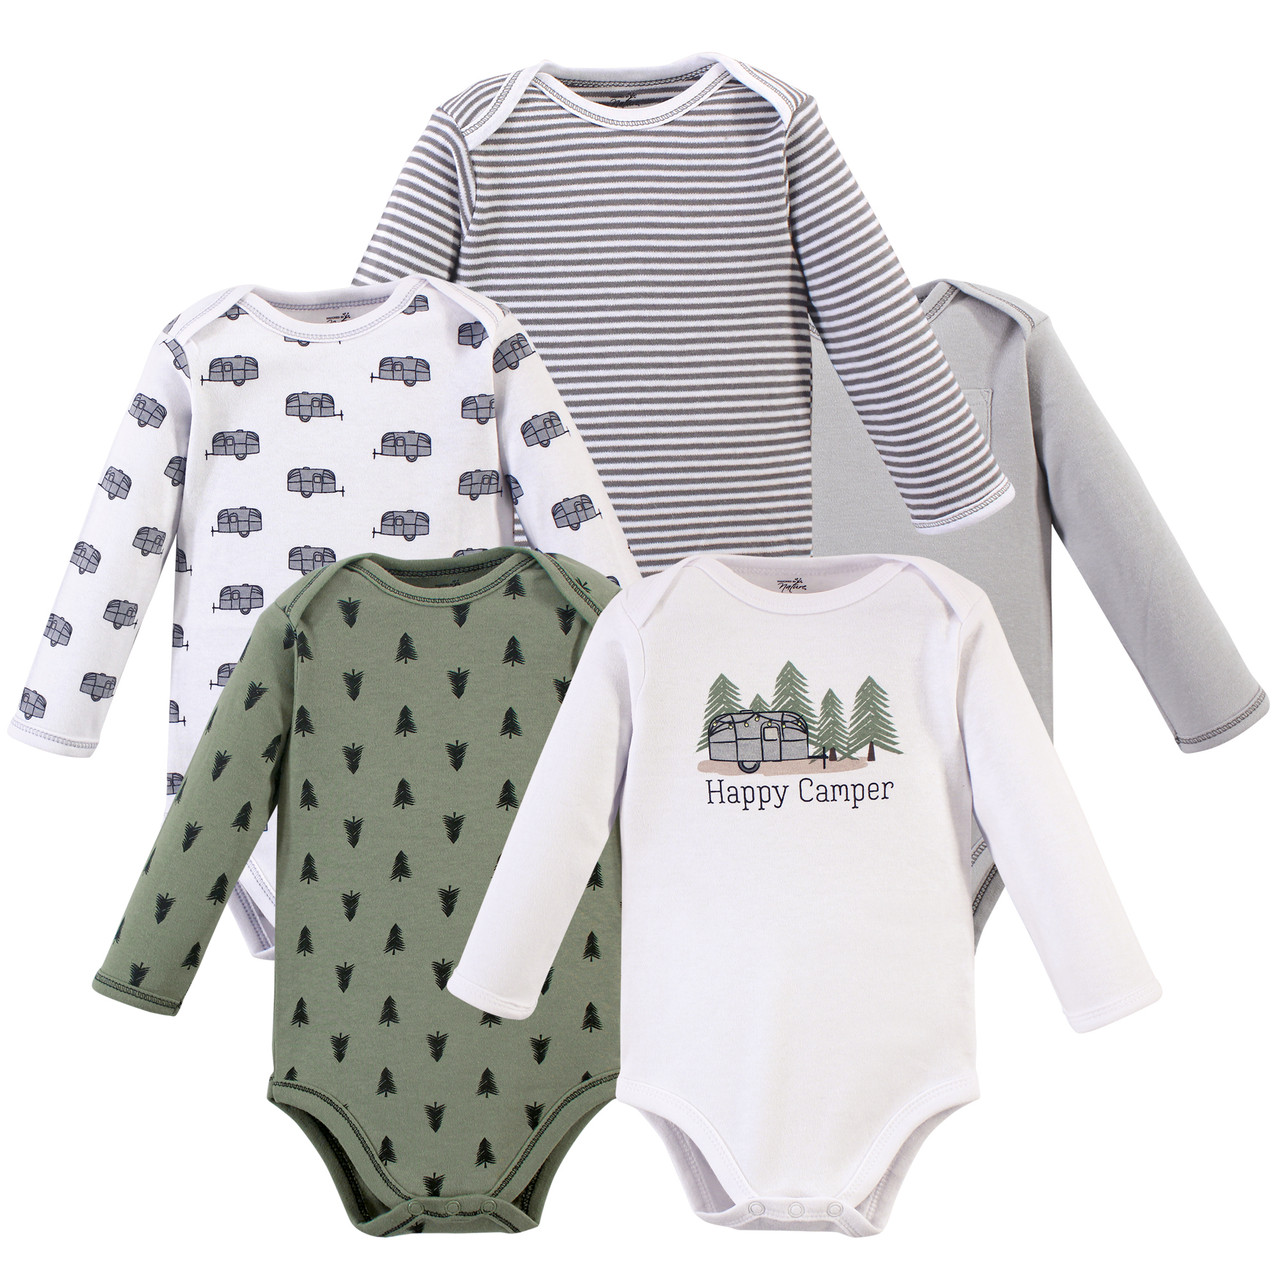 9-12 Months Touched by Nature Baby Organic Cotton Bodysuits White Long Sleeve 5 Pack 12M